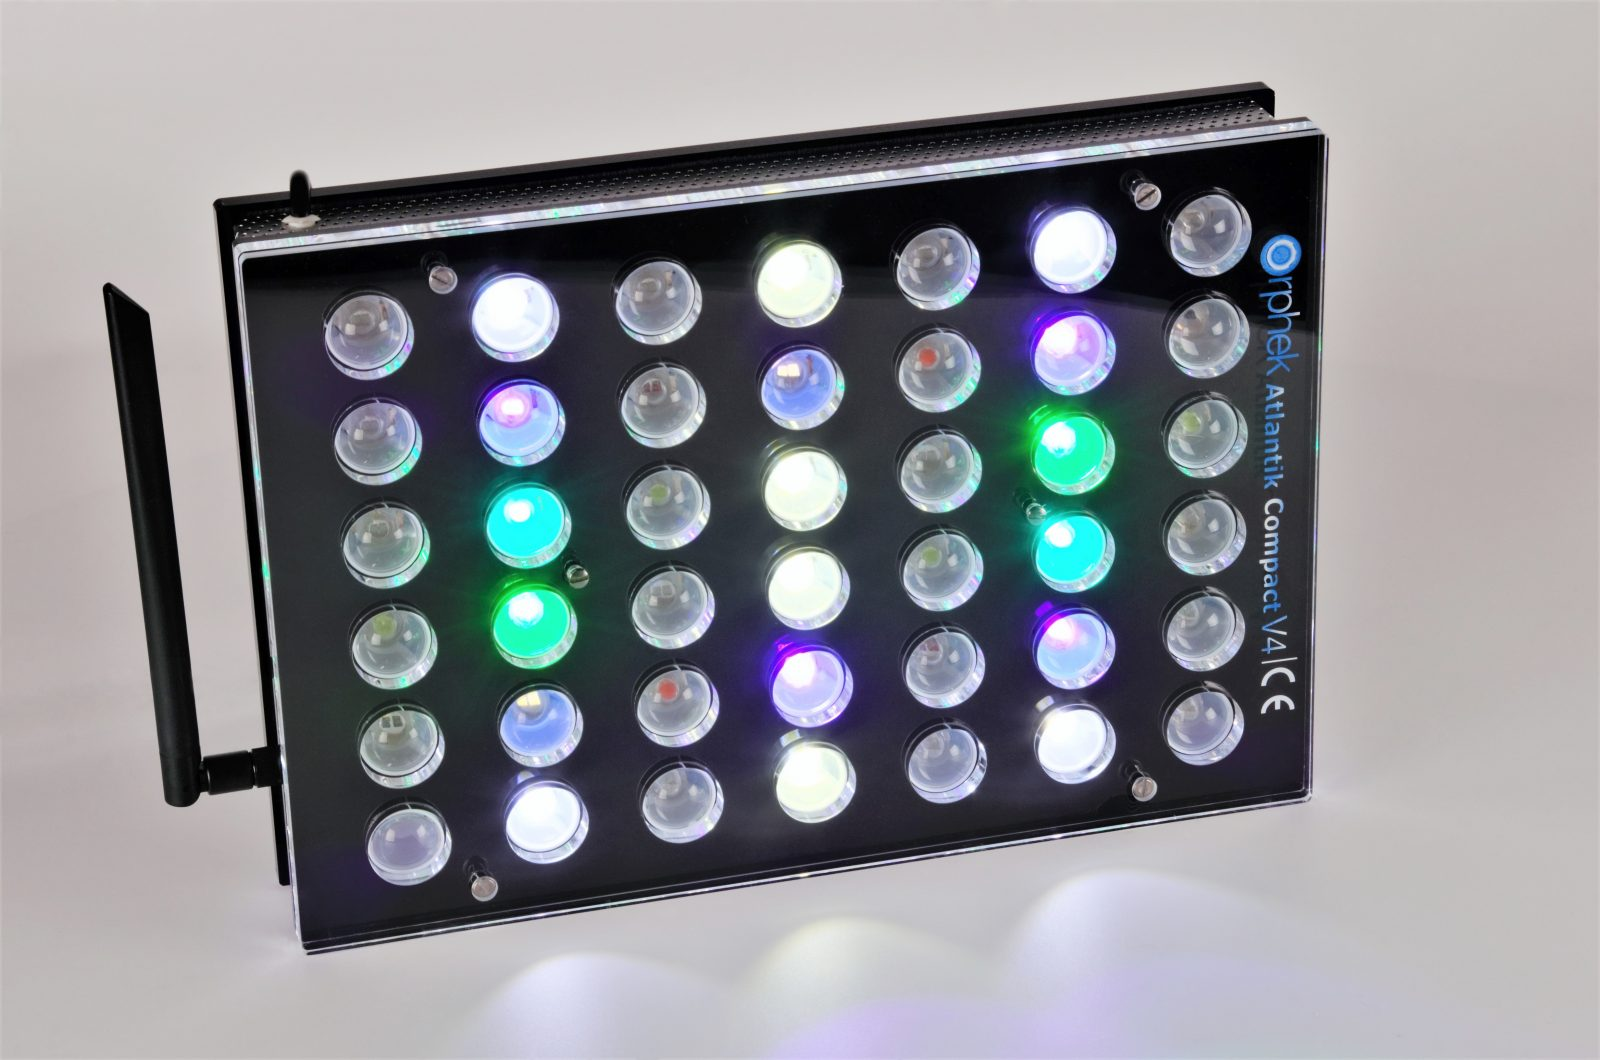 Orphek-Aquarium-LED-Beleuchtung-Atlantik -Compact-V4-light -on -channel 1 + 3